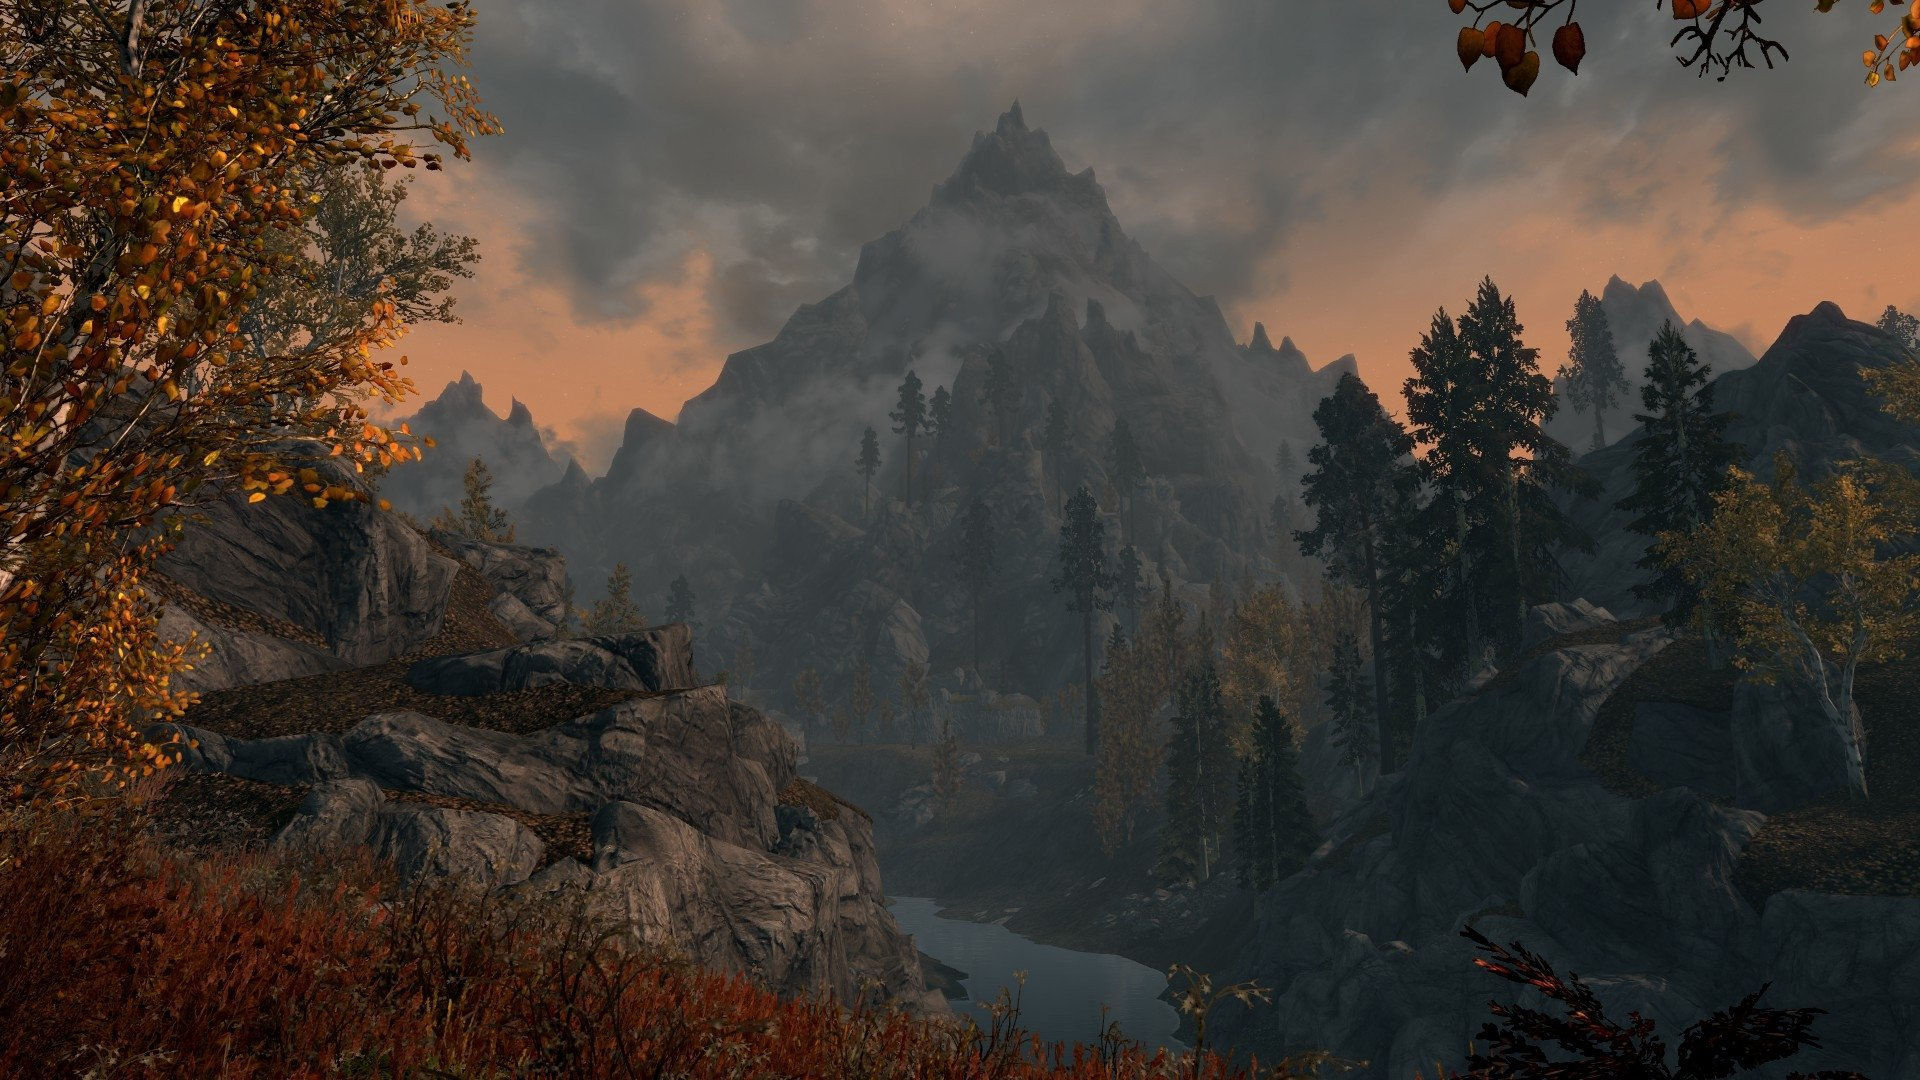 Skyrim Wallpaper Hd 1600x900 River Full Hd Wallpaper And Background 1920x1080 Id 559874